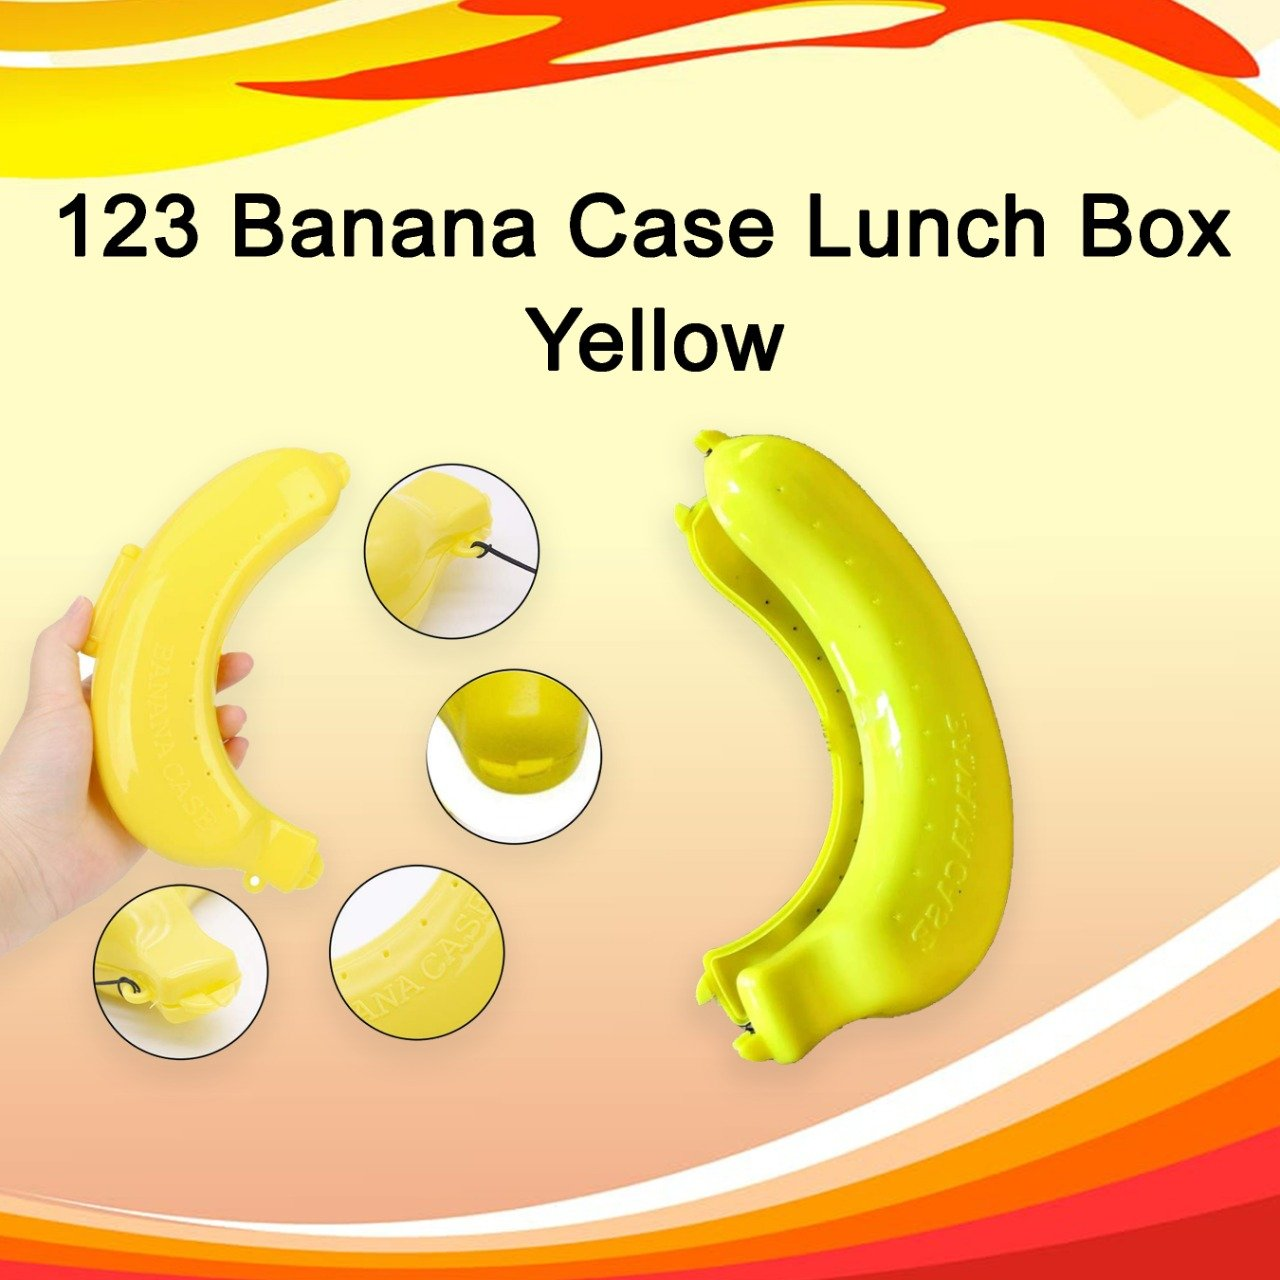 Banana Case Lunch Box Yellow